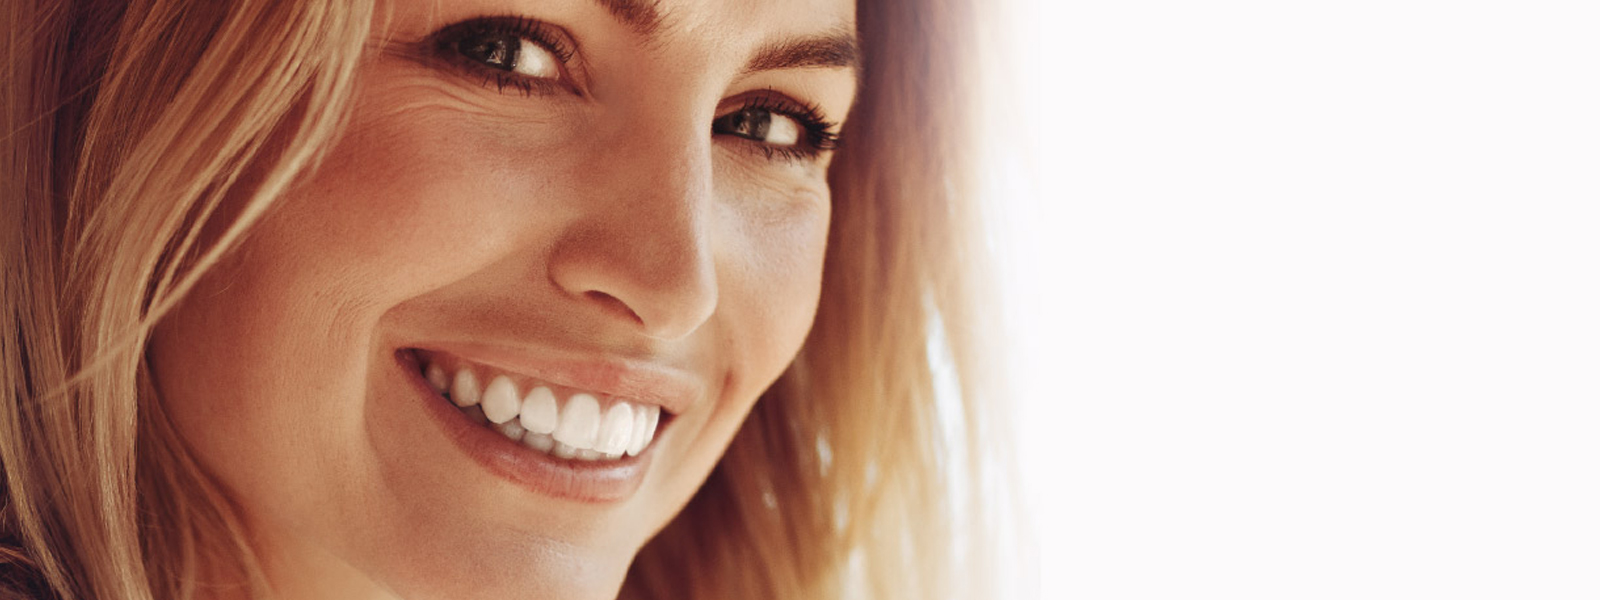 affordable invisalign treatment charlotte nc